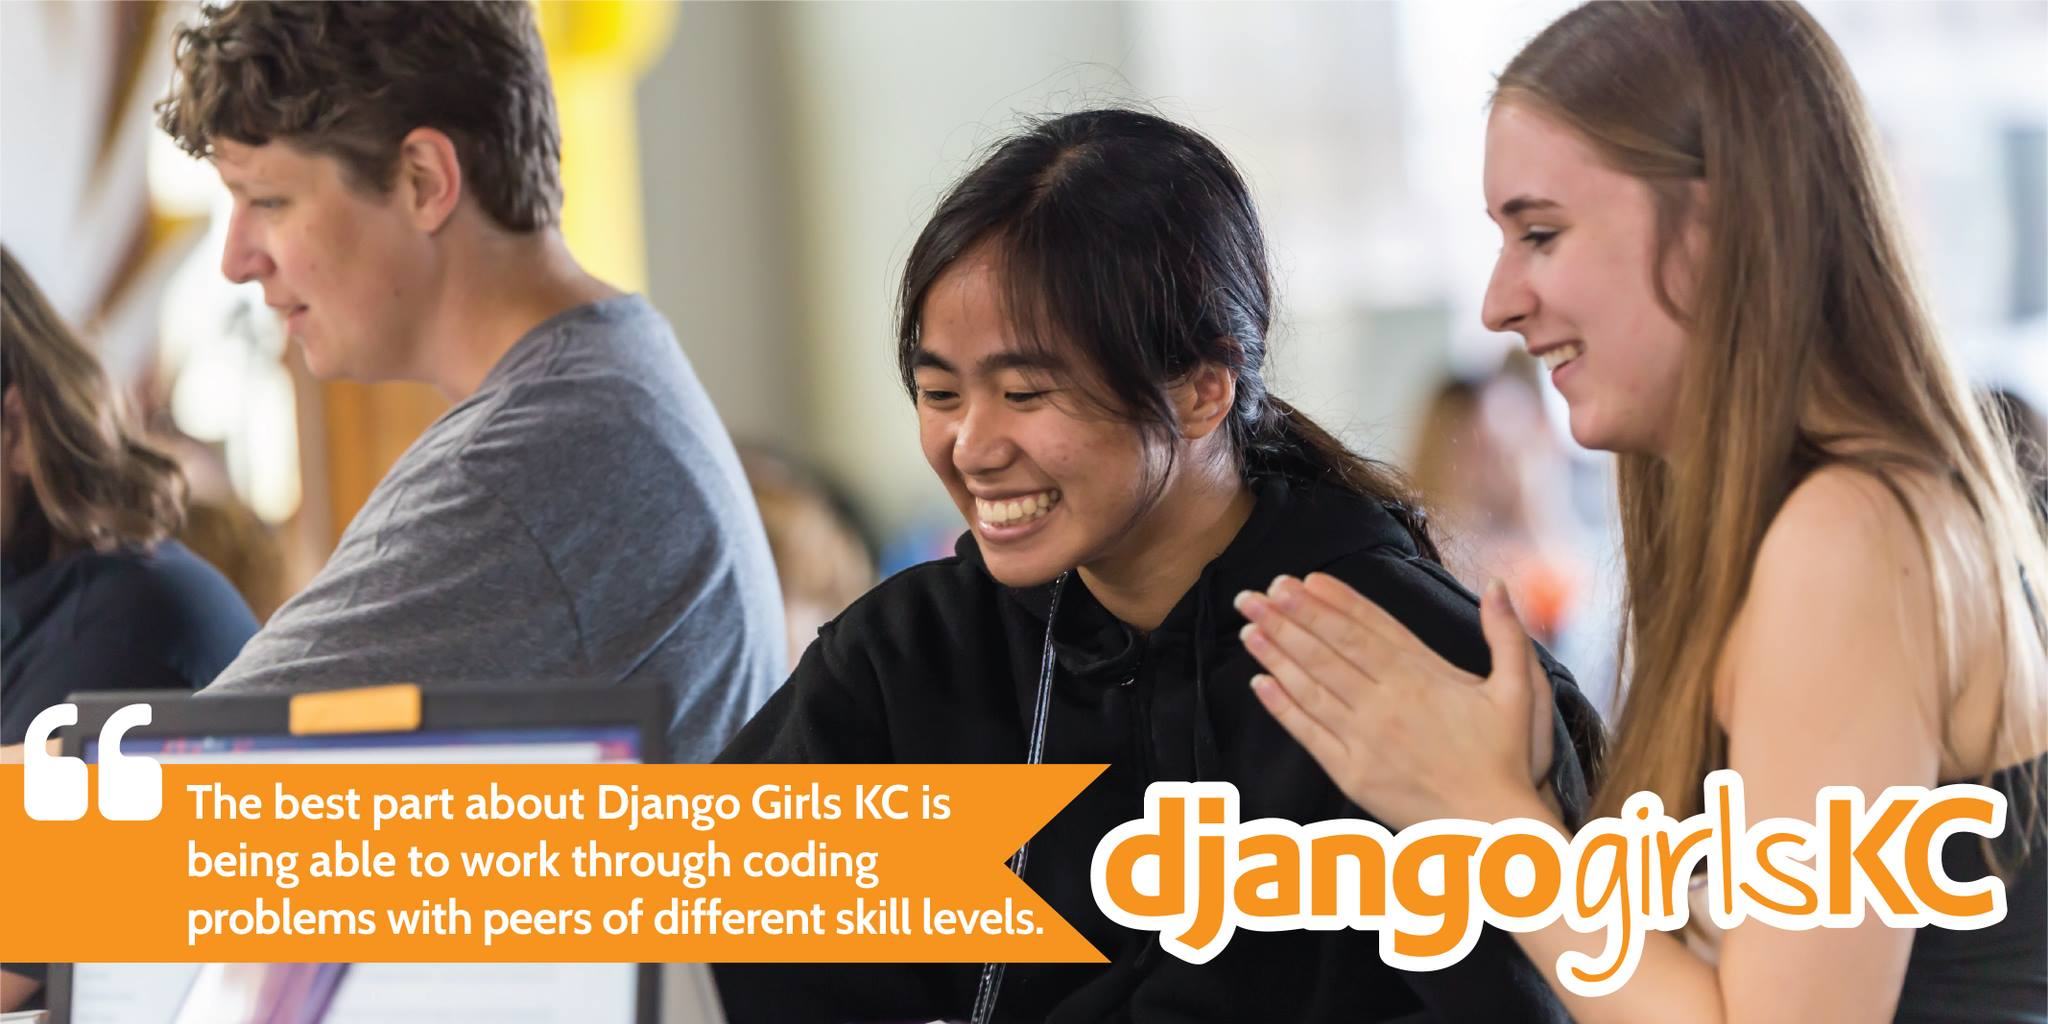 DjangoGirls KC